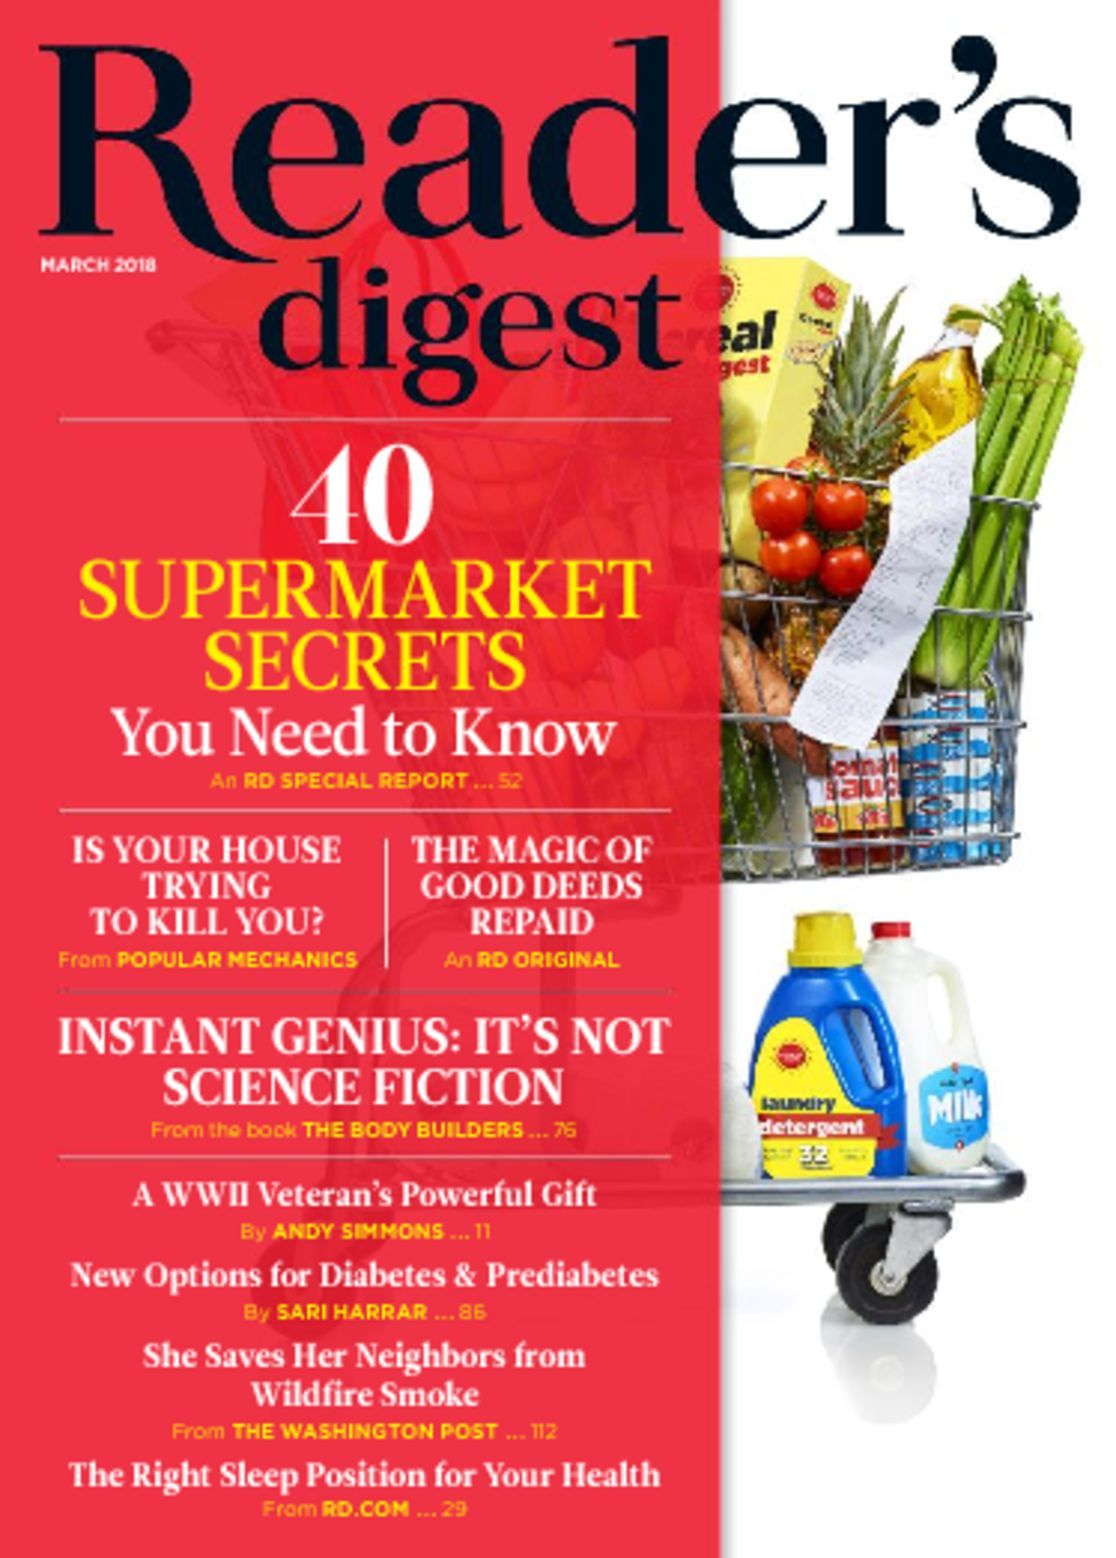 The Readers Digest Magazine in its British edition is an all round magazine for the urban woman. Get the most gripping features on relationships and careers, with expanded reporting on fashion and beauty, health and fitness, published with glamour and guts.